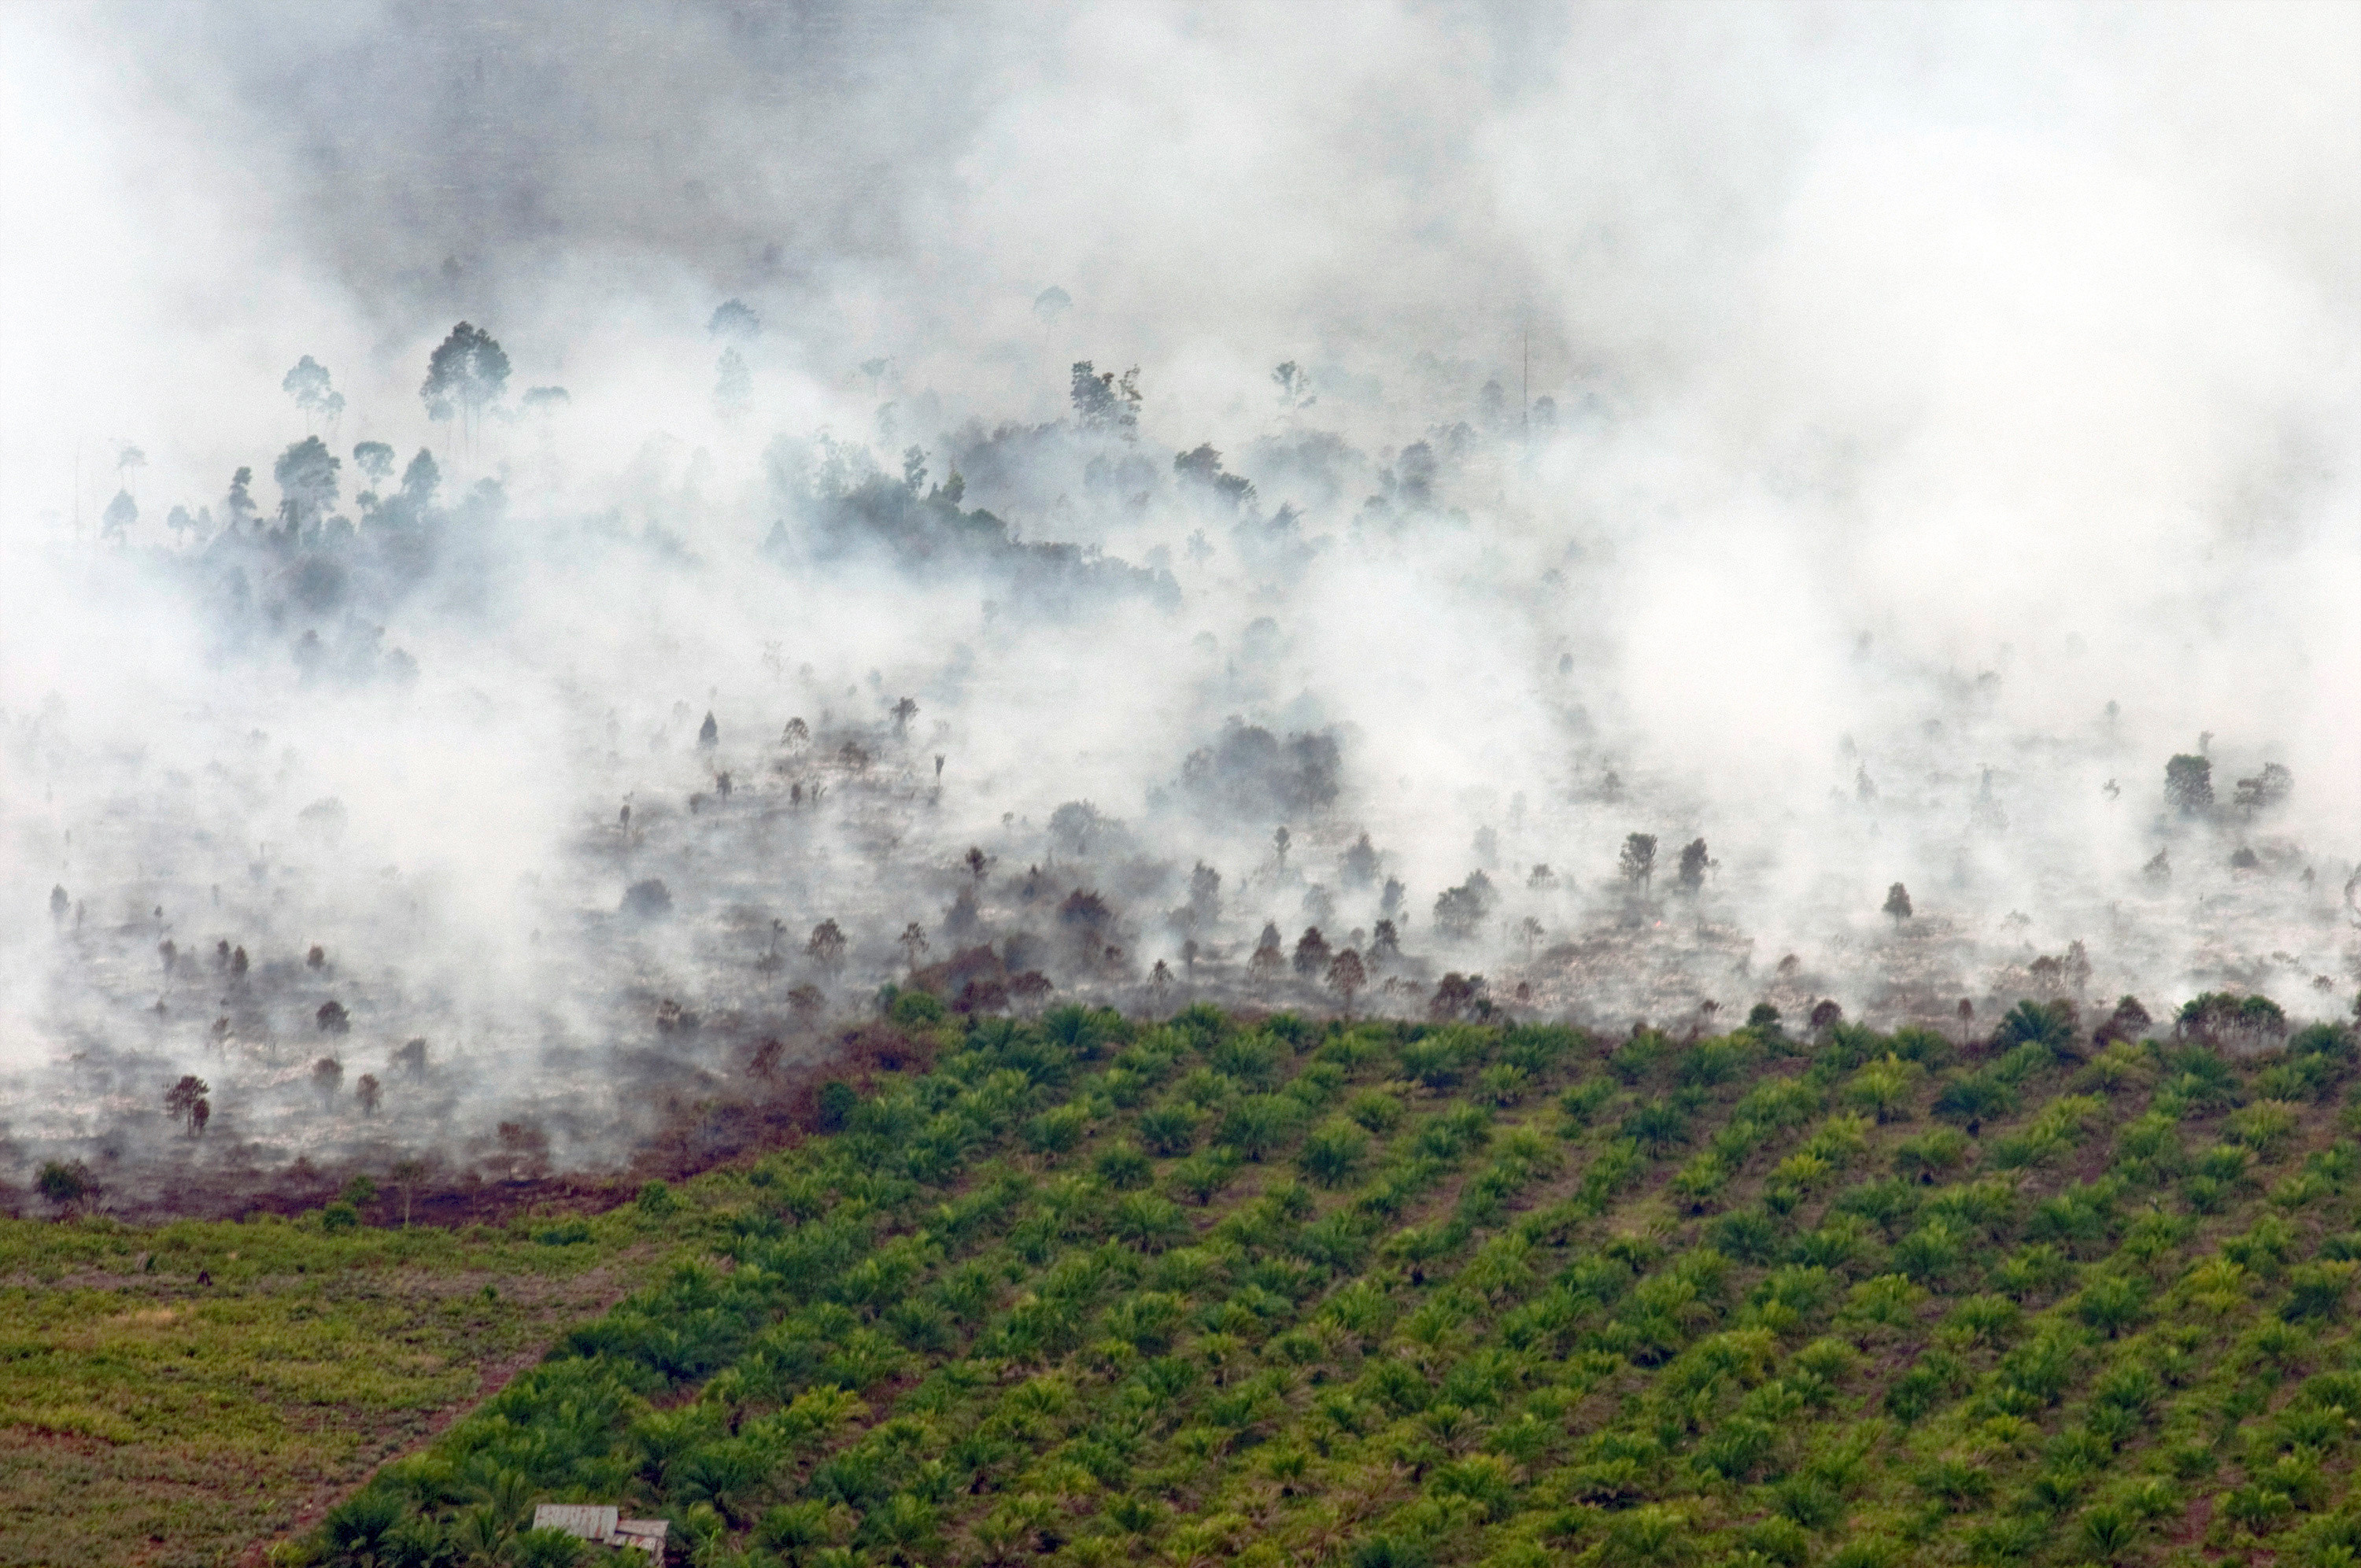 Palm oil is often viewed as an irresponsible innovation because of its environmental impact